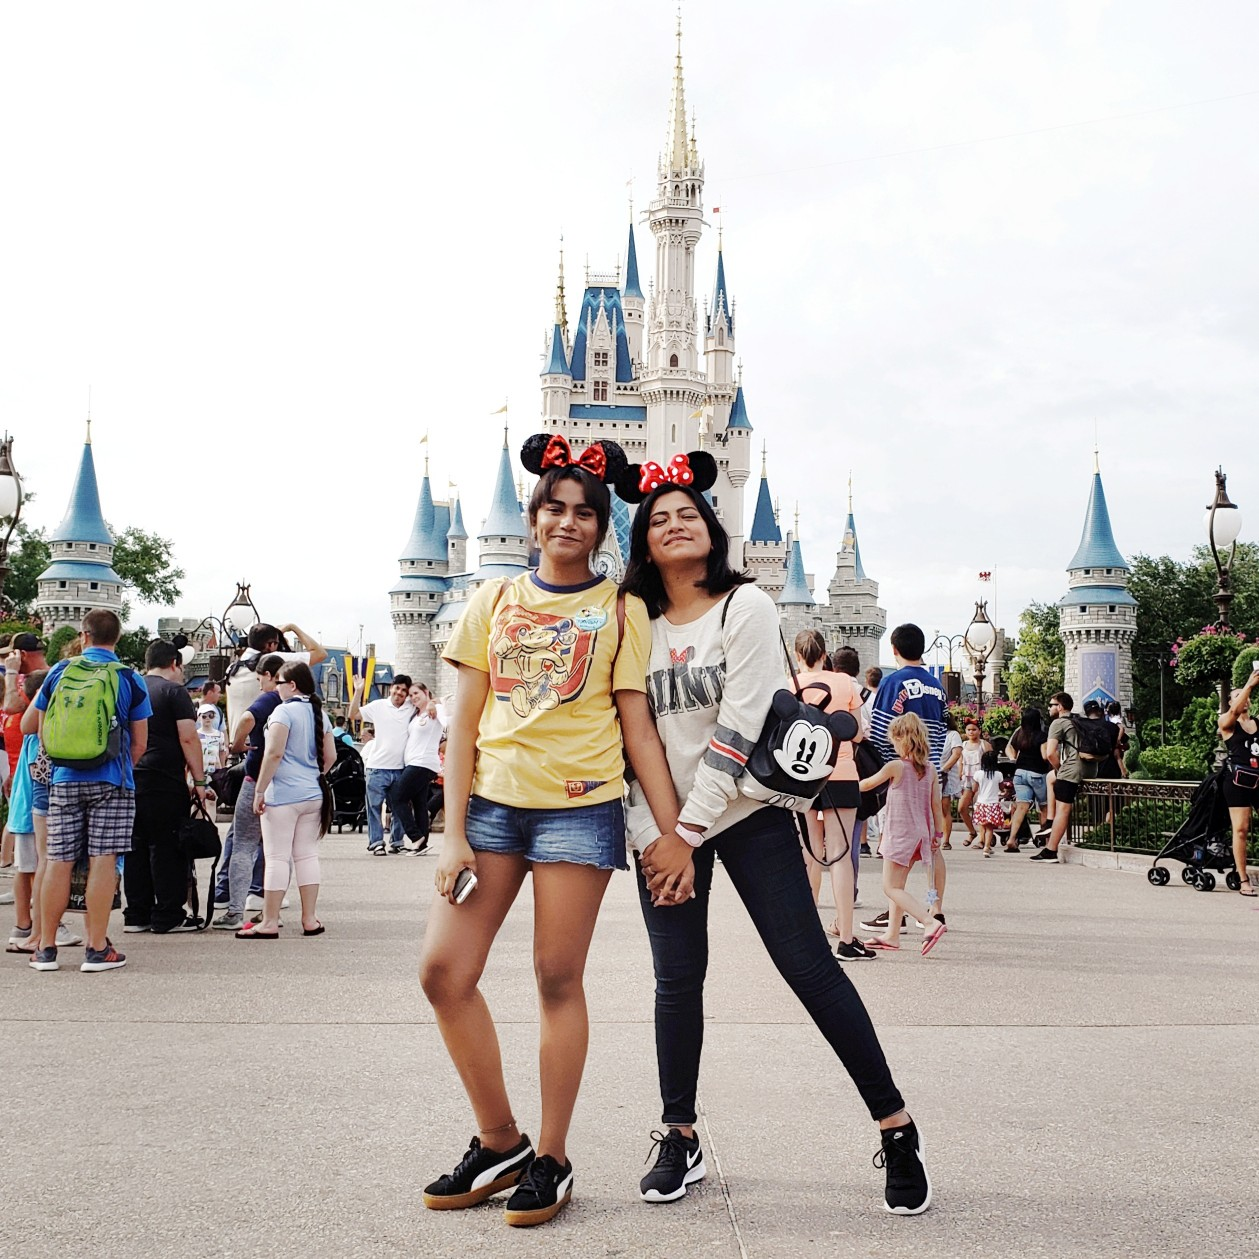 Sisters Best Friends in Orlando Walt Disney World Magic Kingdom